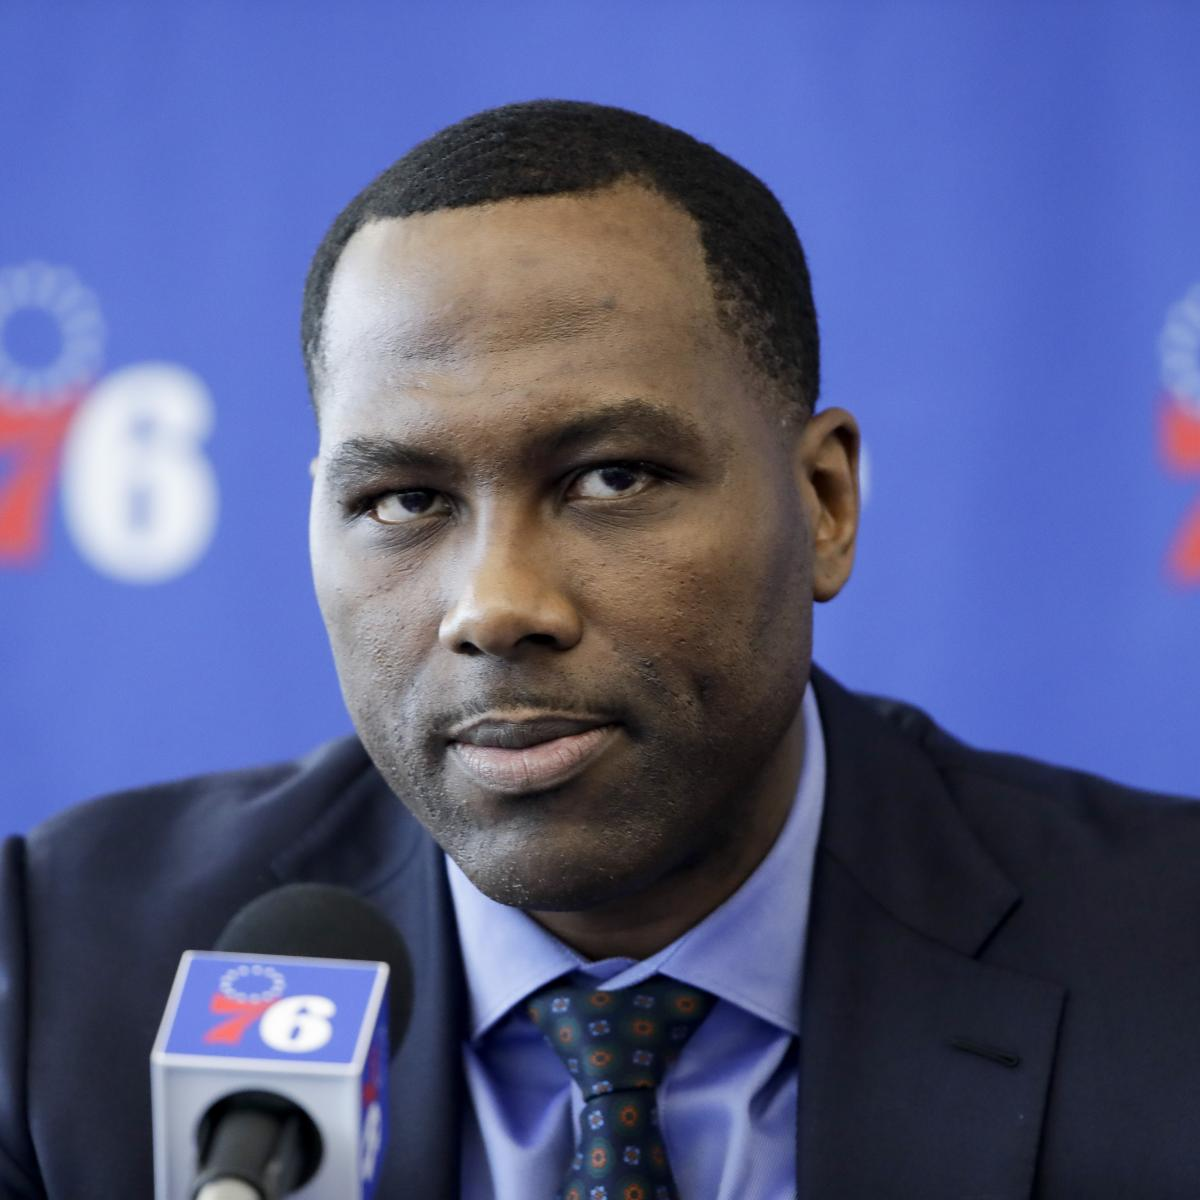 Knicks Rumors: 76ers Elton Brand a Candidate for New York GM Job